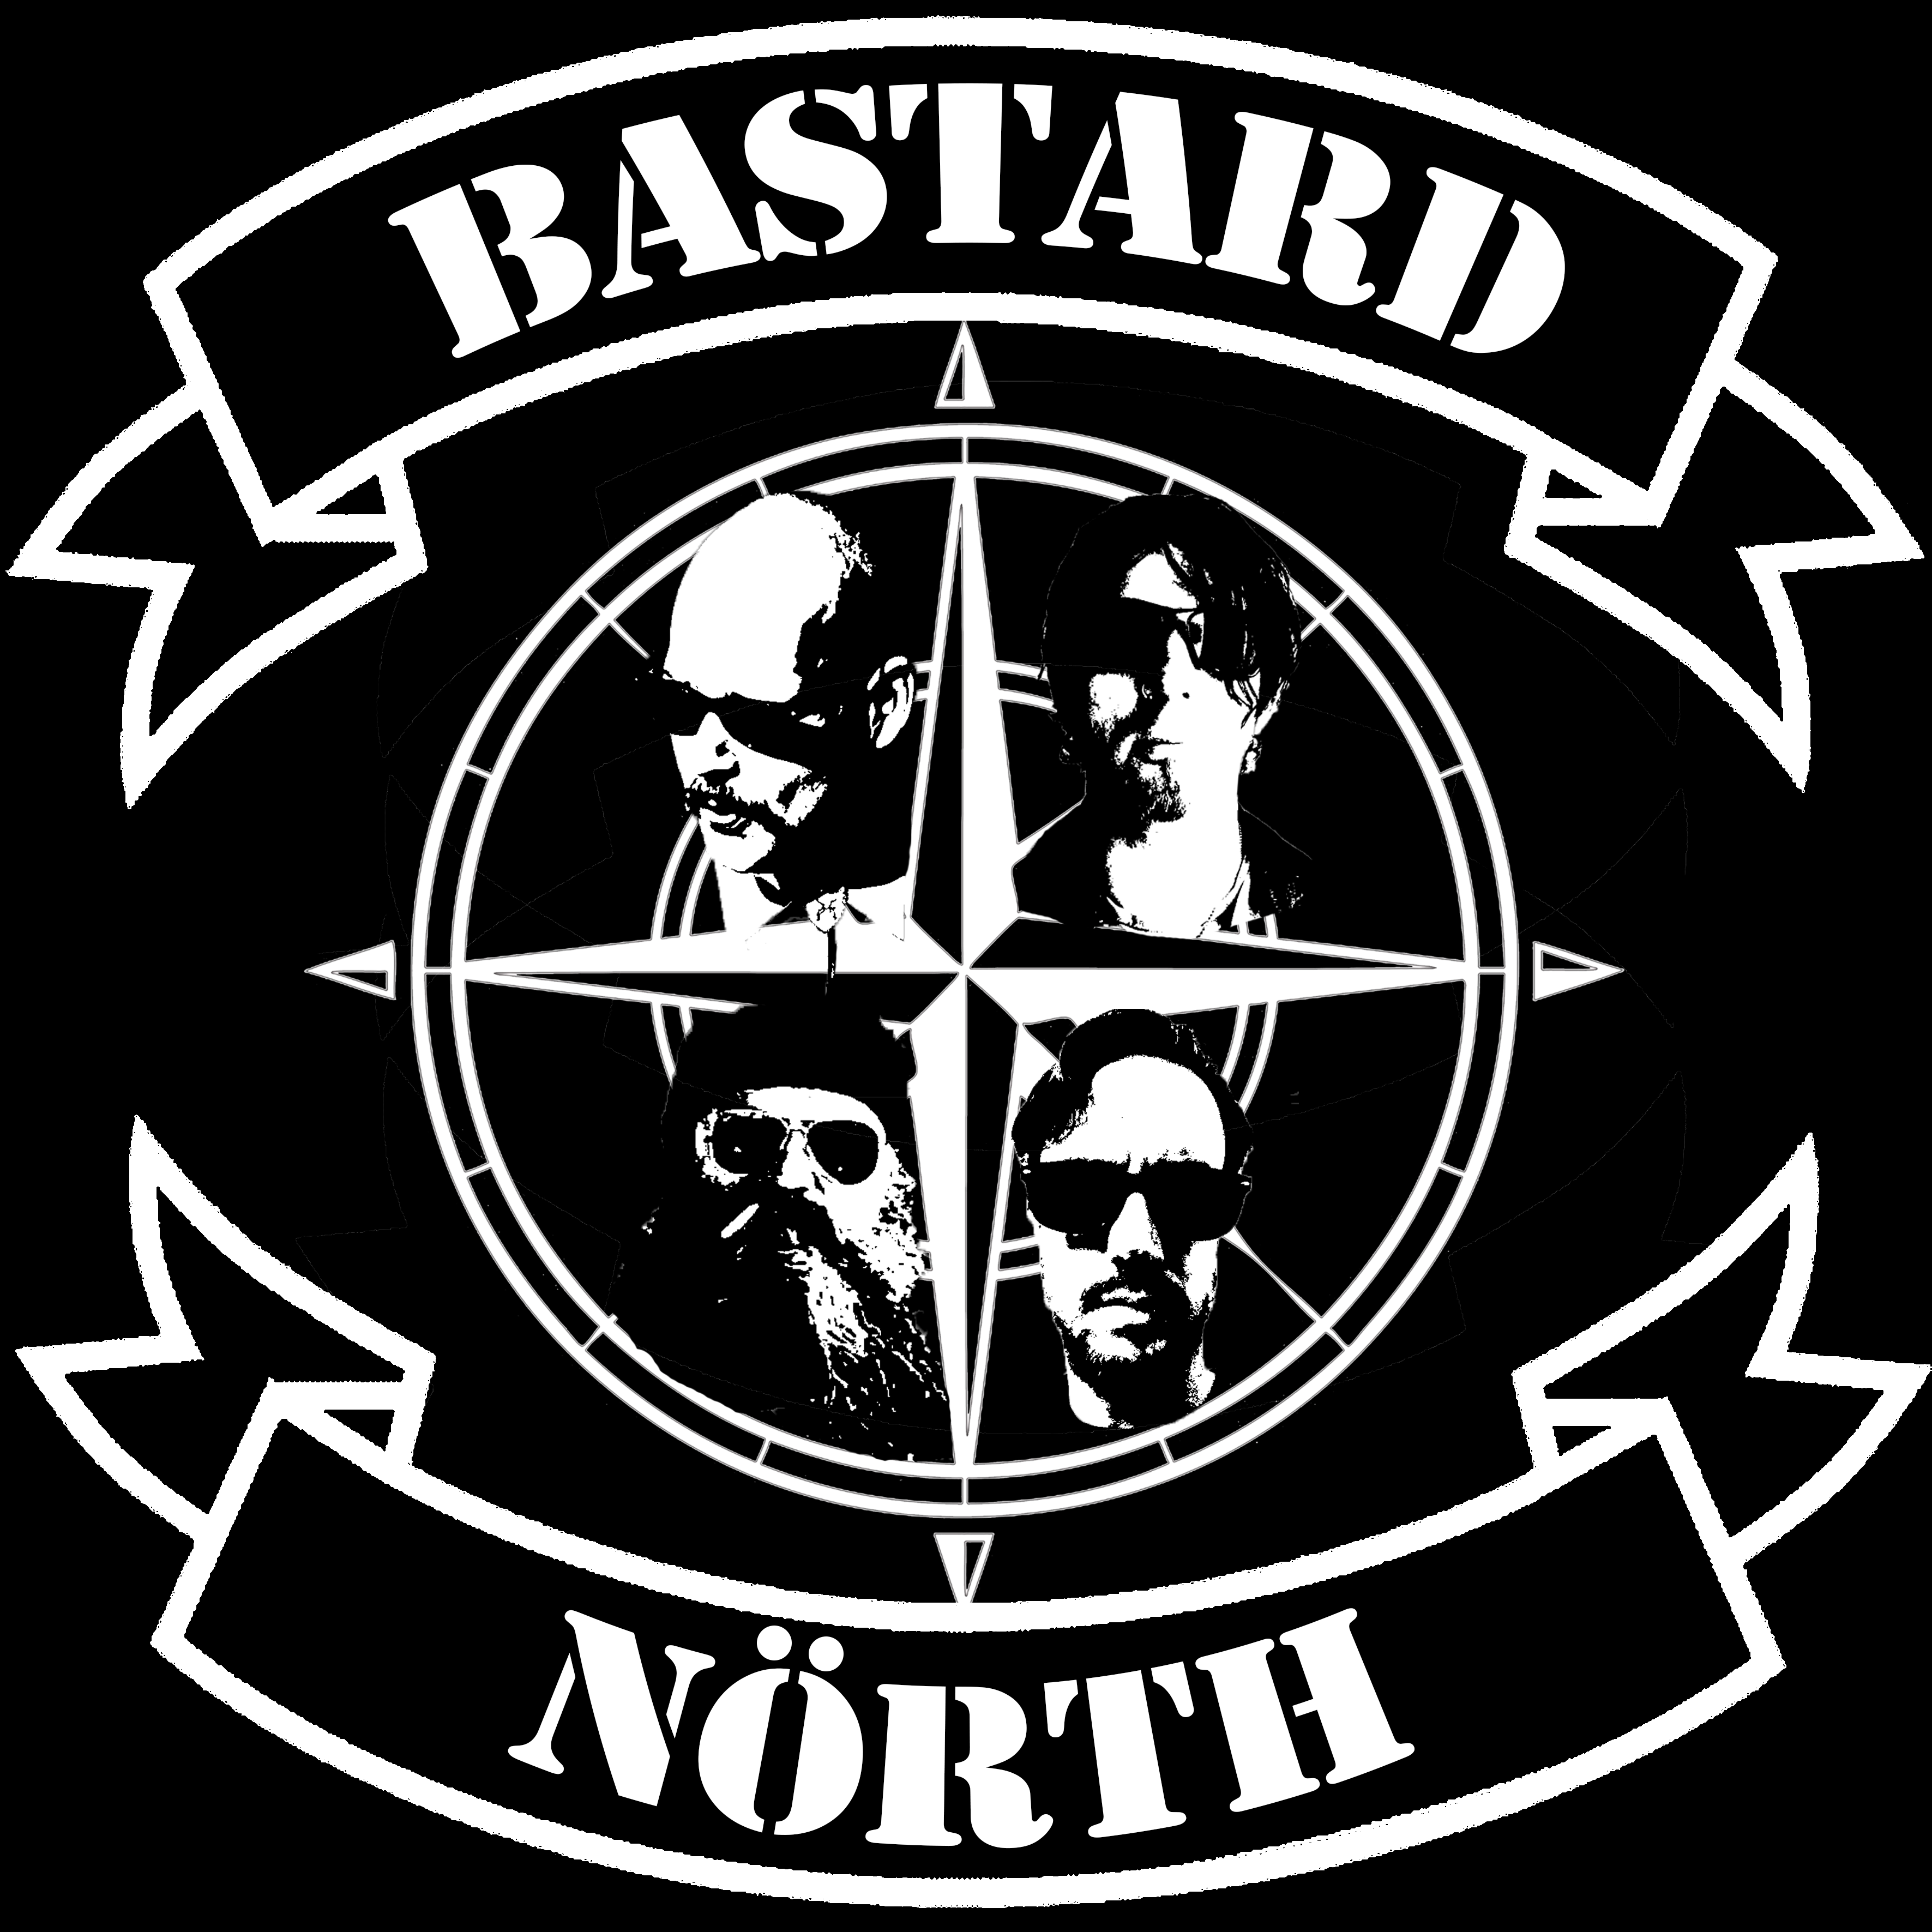 Bastard North